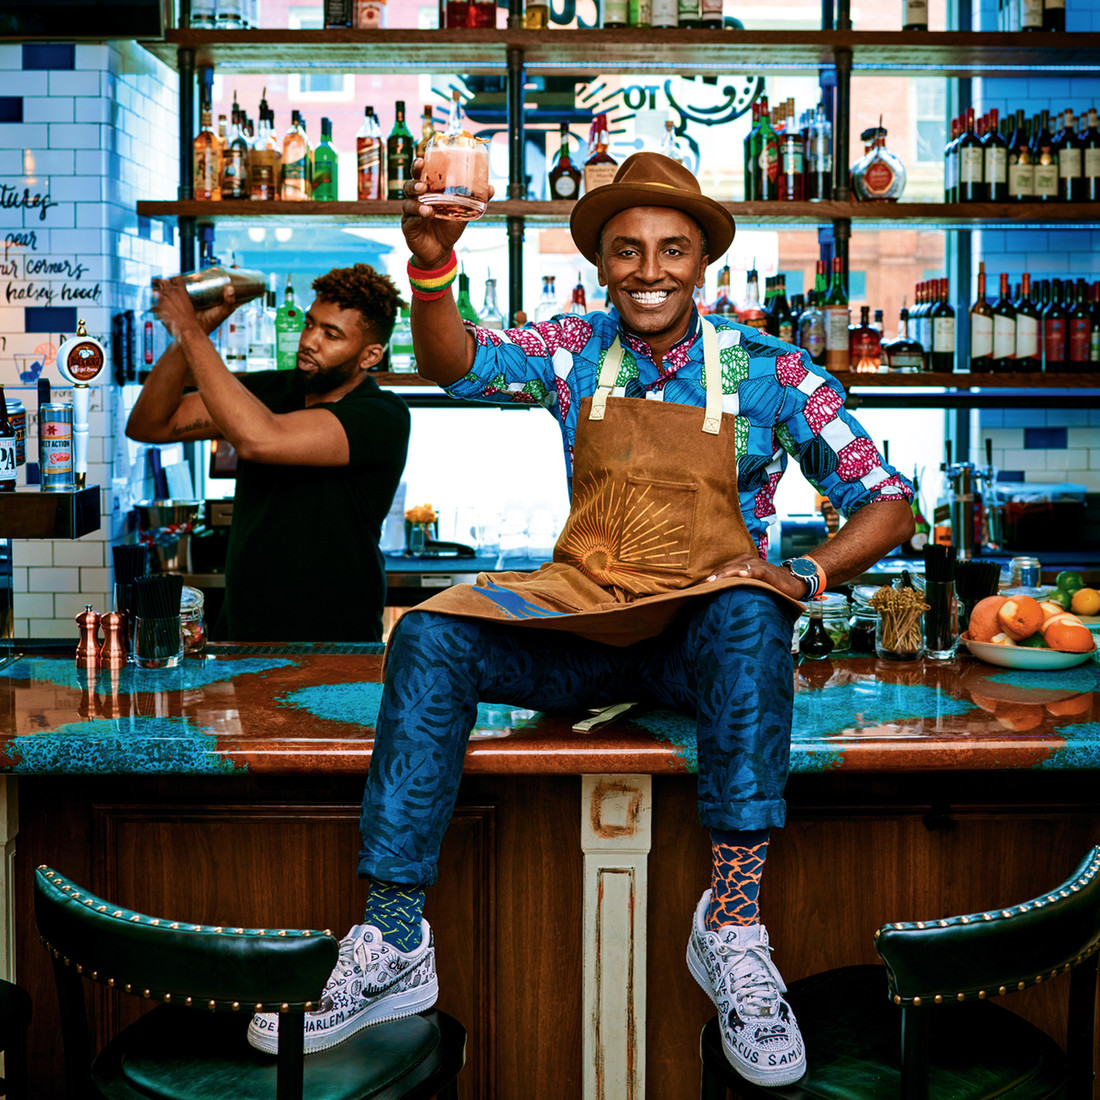 Marcus Samuelsson on the bar in one of his restaurants